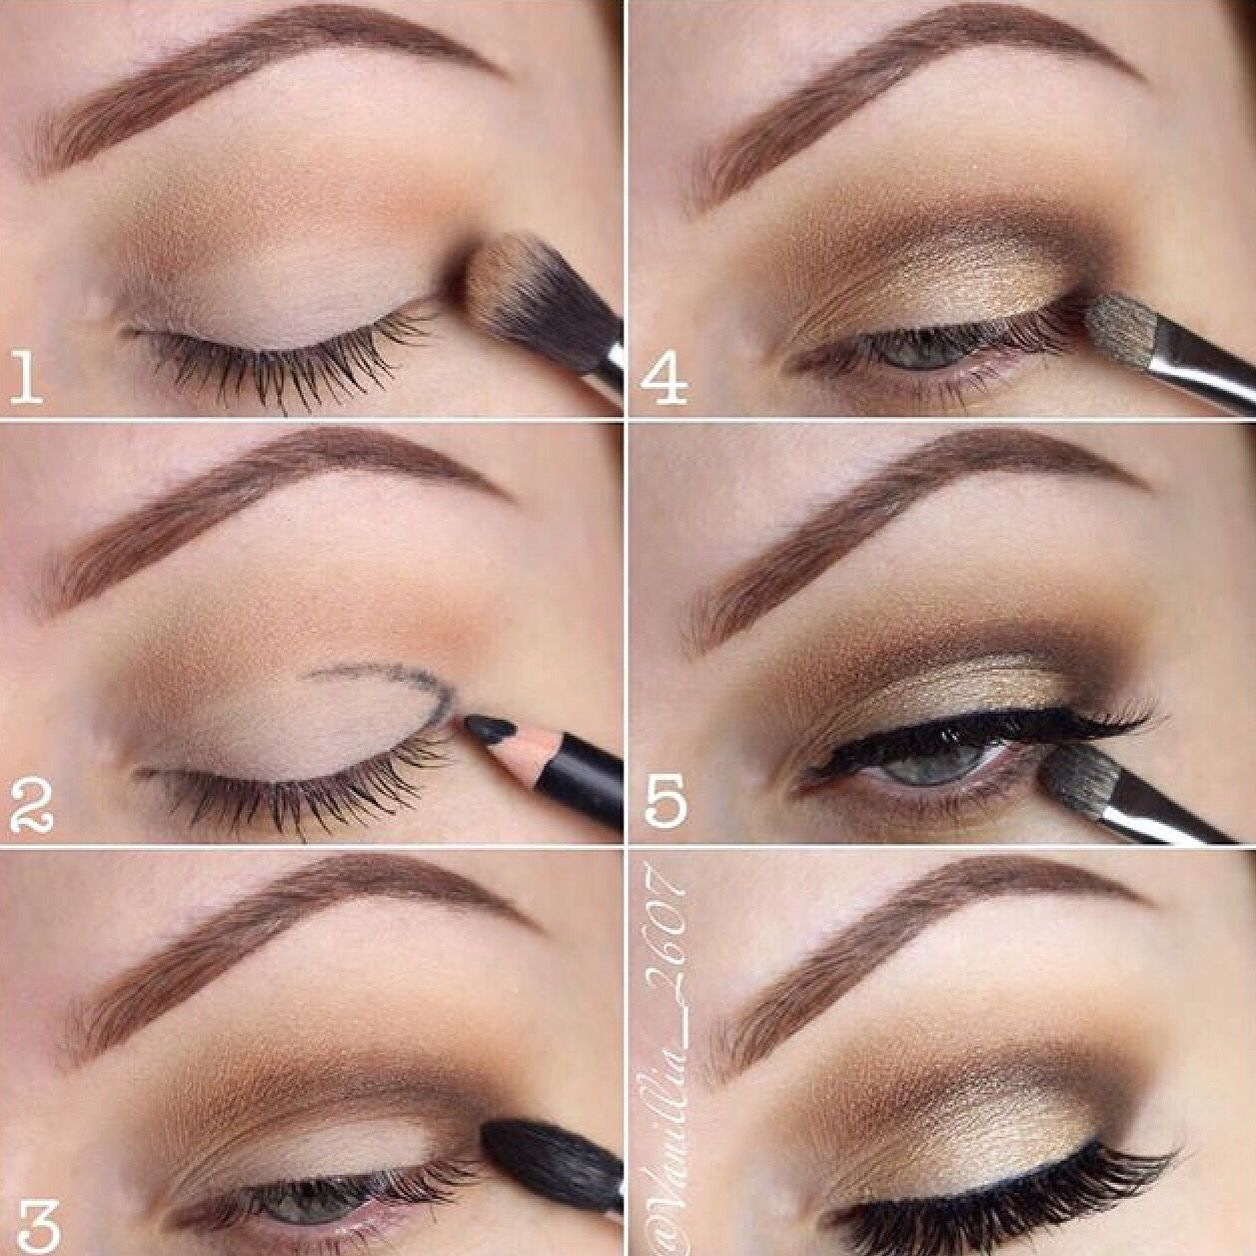 b9feaa62c8d Eye makeup tutorial using Lotus Lashes No. 504 #eyeshadow #eyelashes  #eyeliner